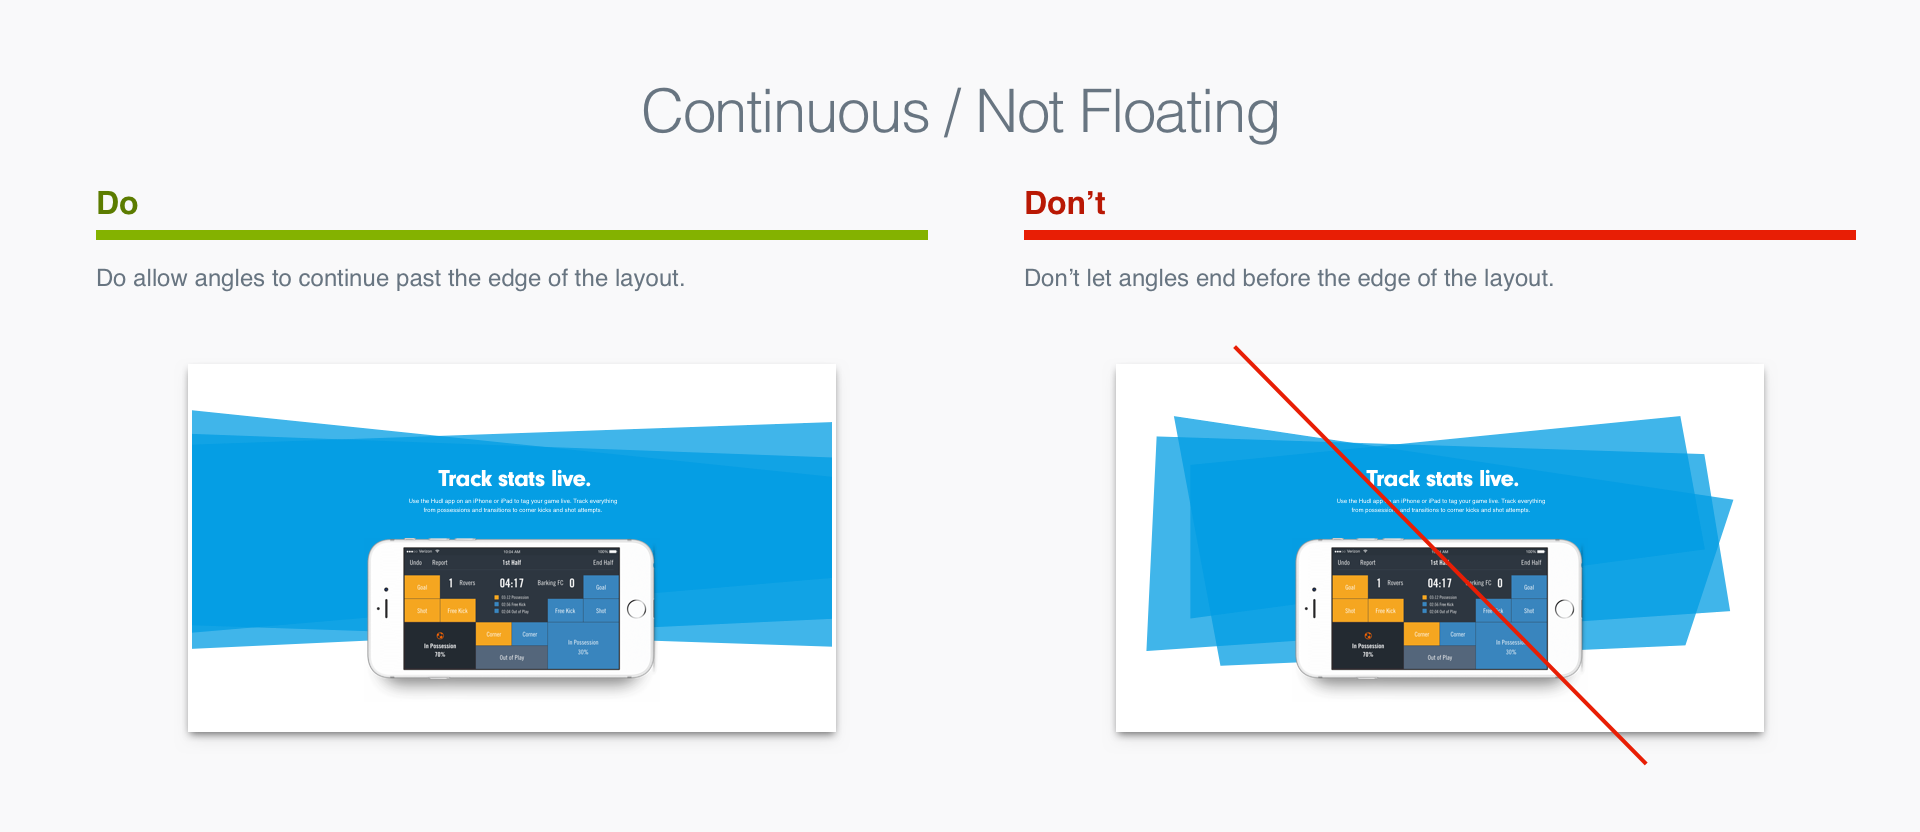 Continuous / Not Floating